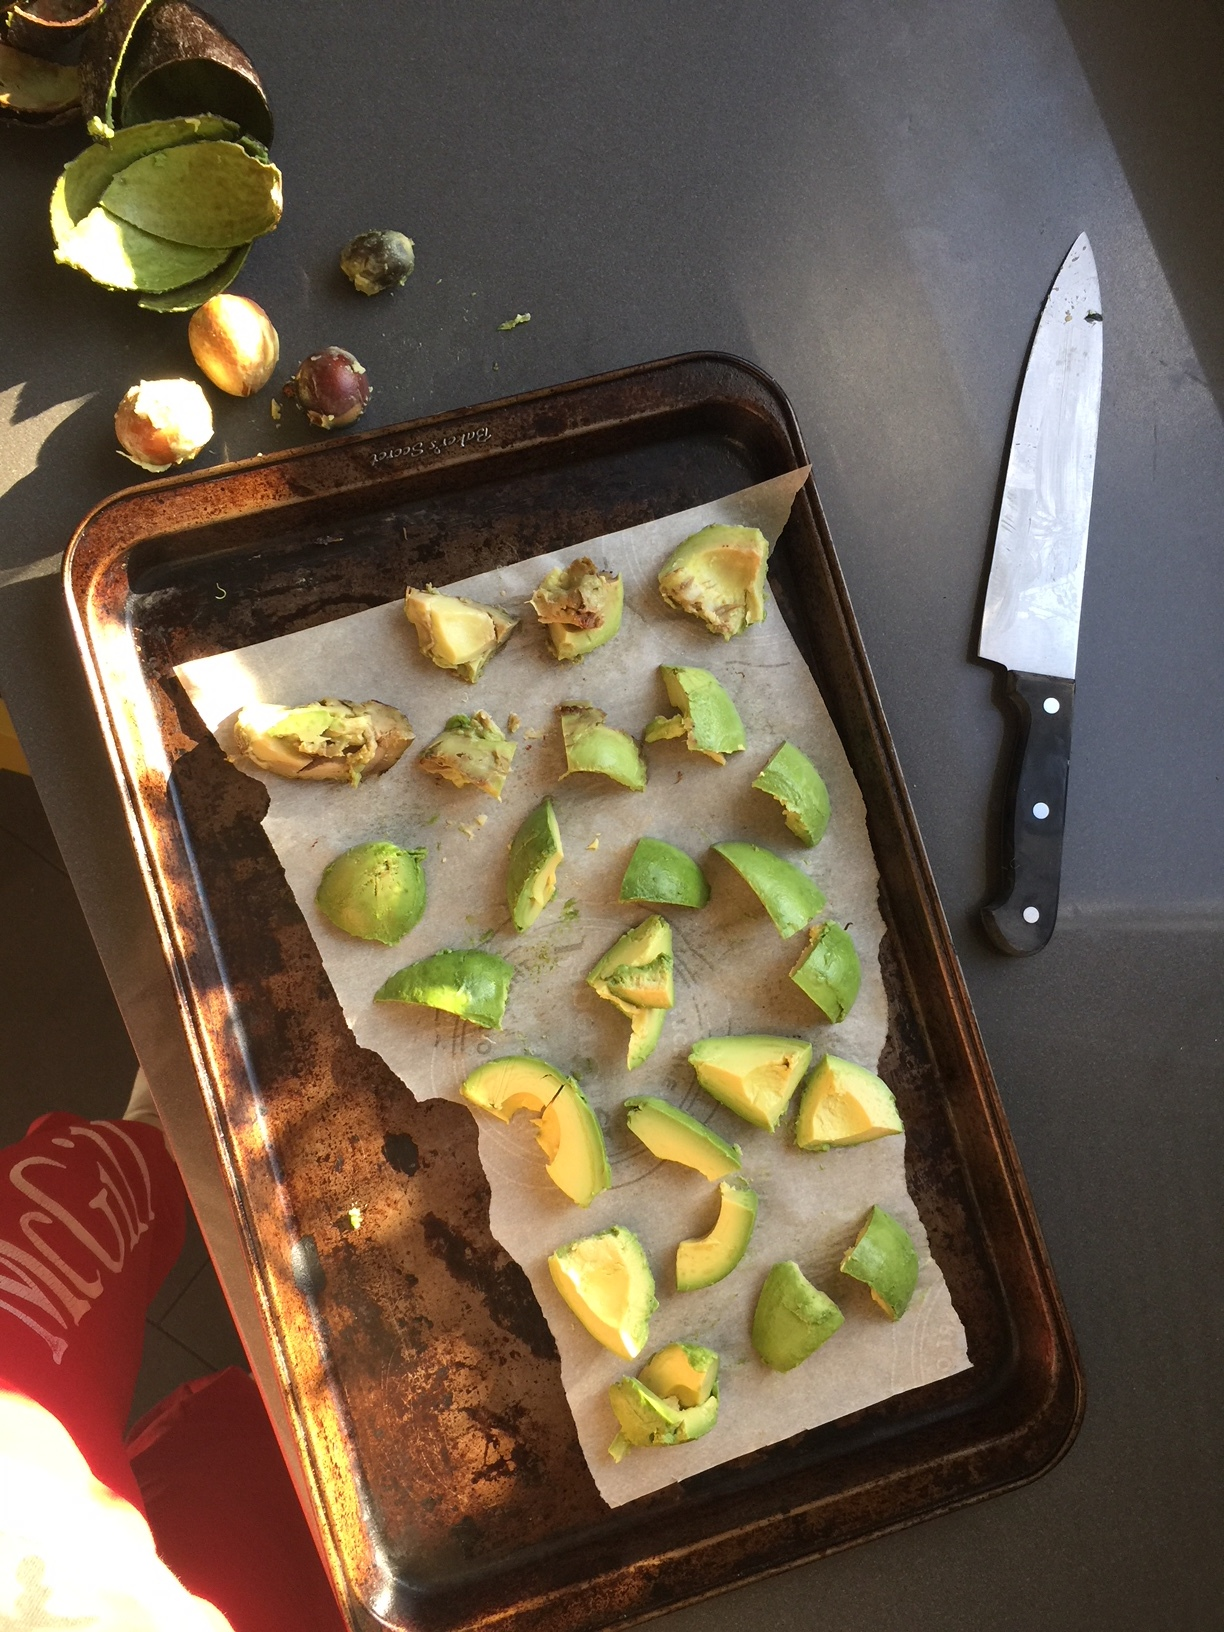 Freezing perfectly ripe avocados (and steamed veggies) to easily add in to smoothies